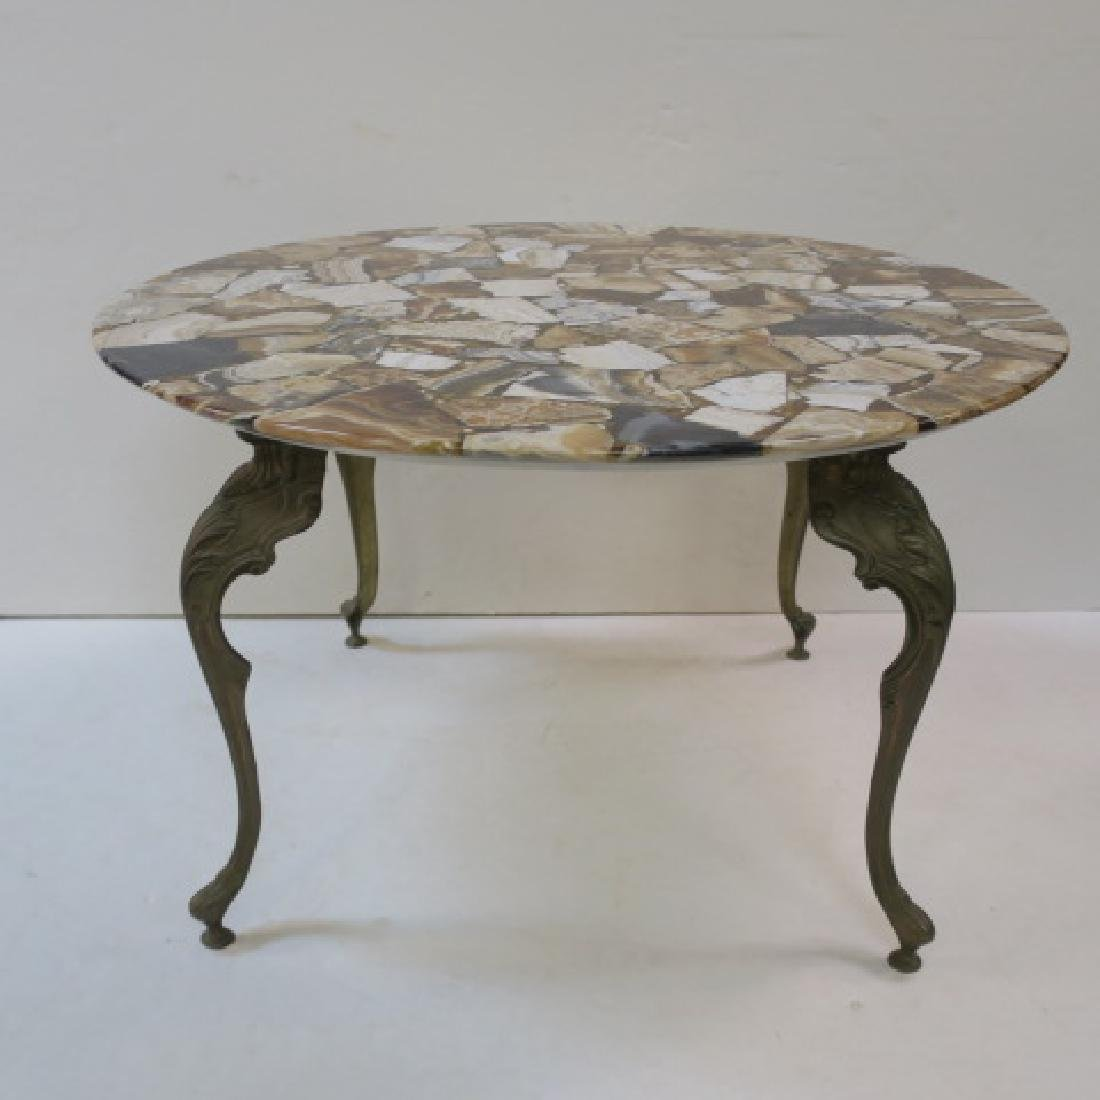 Round Agate Top Metal Frame Table by JIM: